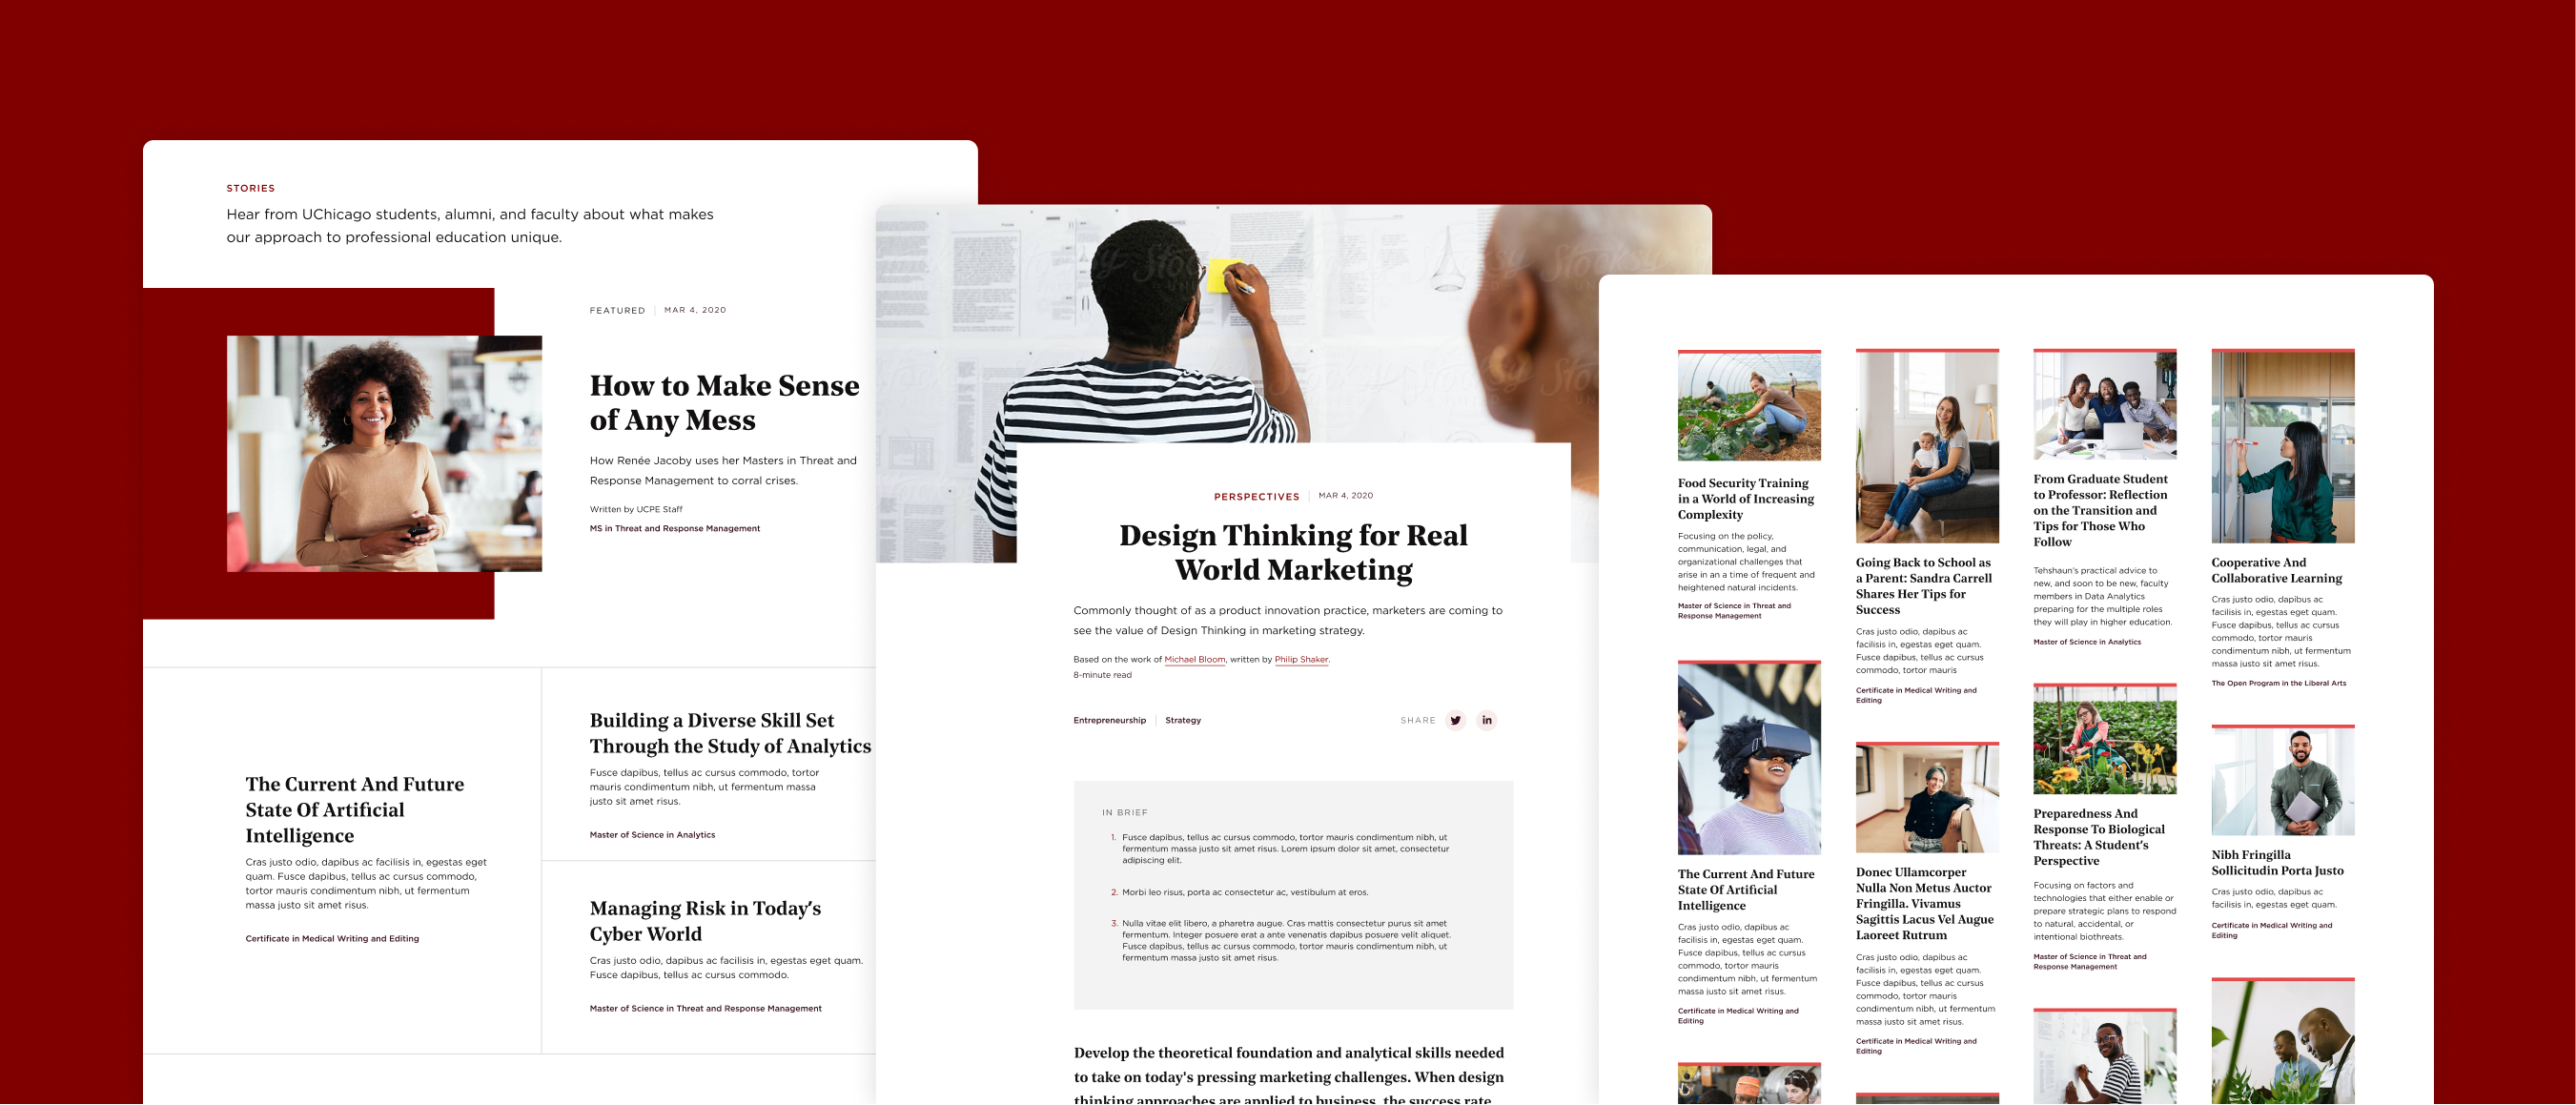 Three page compositions stacked in a diagonal pattern from top left to bottom right. The images on the page comps feature the articles pages — aka perspectives pages— including the index, feature articles, and article detail pages.